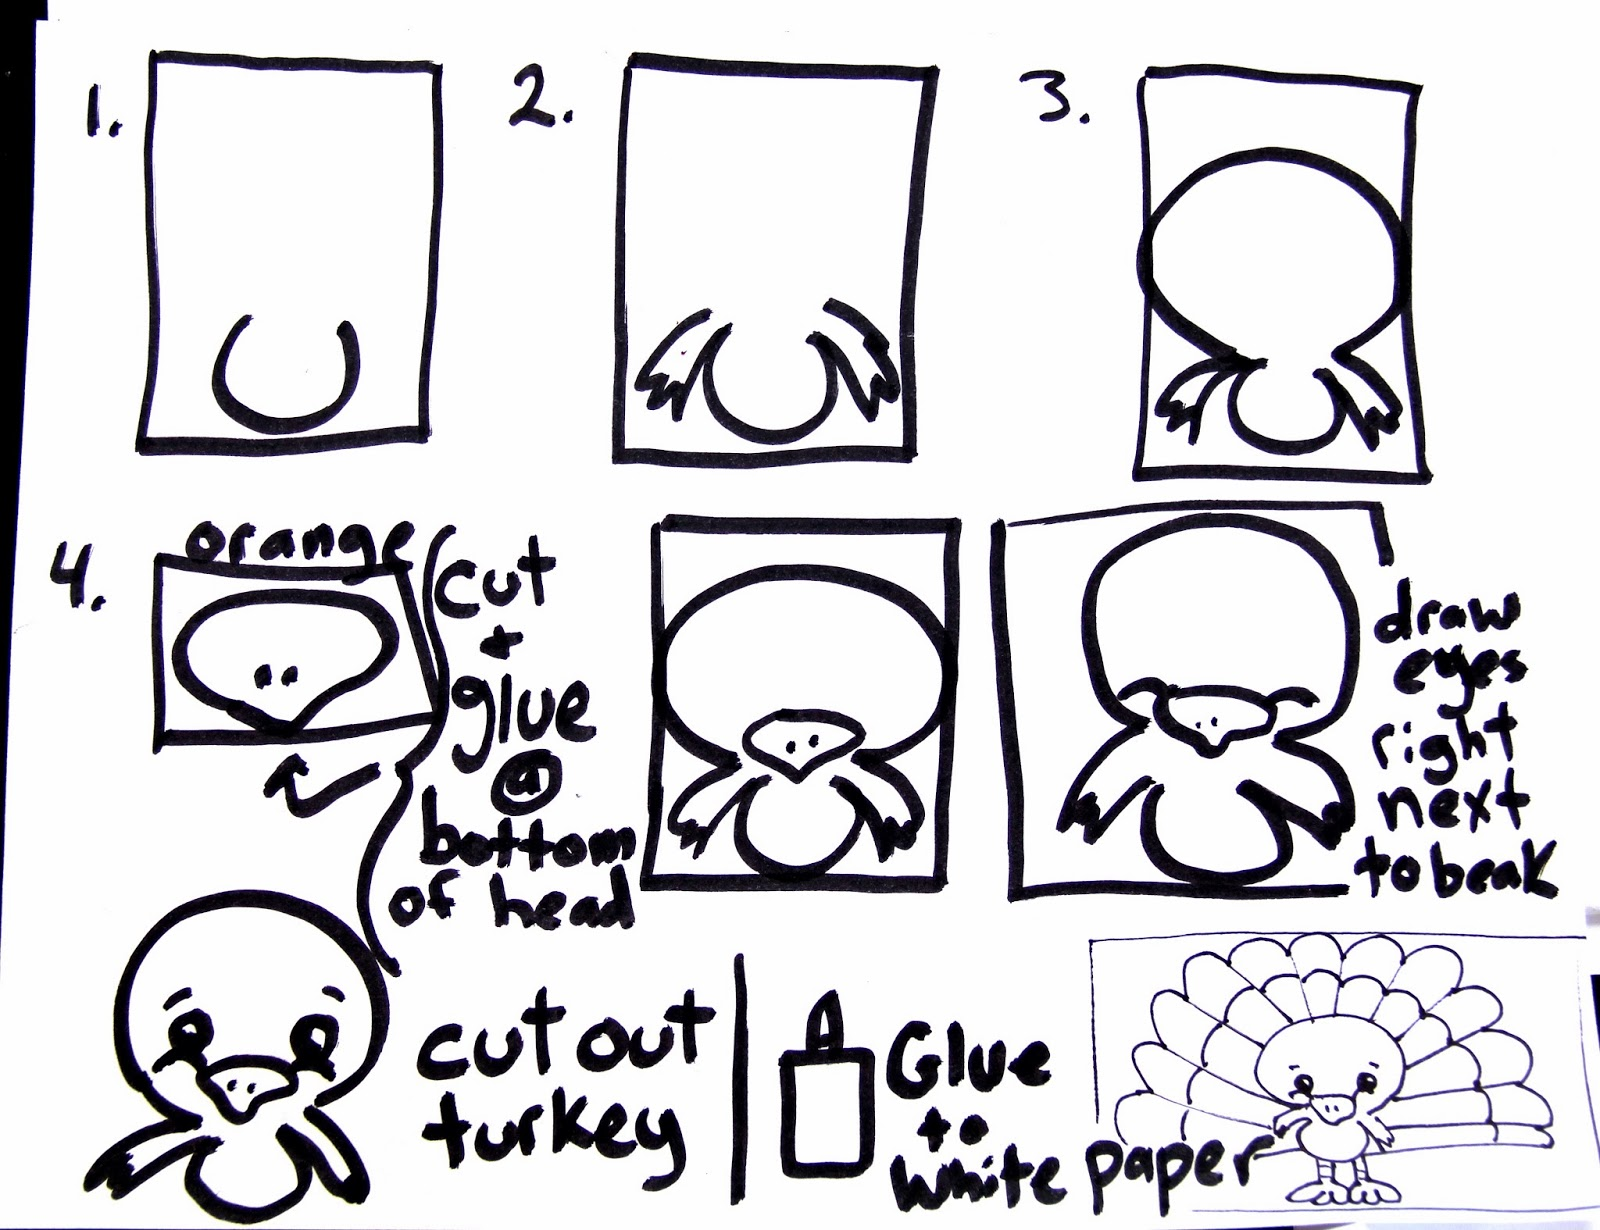 First You Draw The Body And Beak On Construction Paper And Cut Them Out  Draw The Turkey's Face With Oil Pastels Glue Him On A Large Piece Of White  Paper